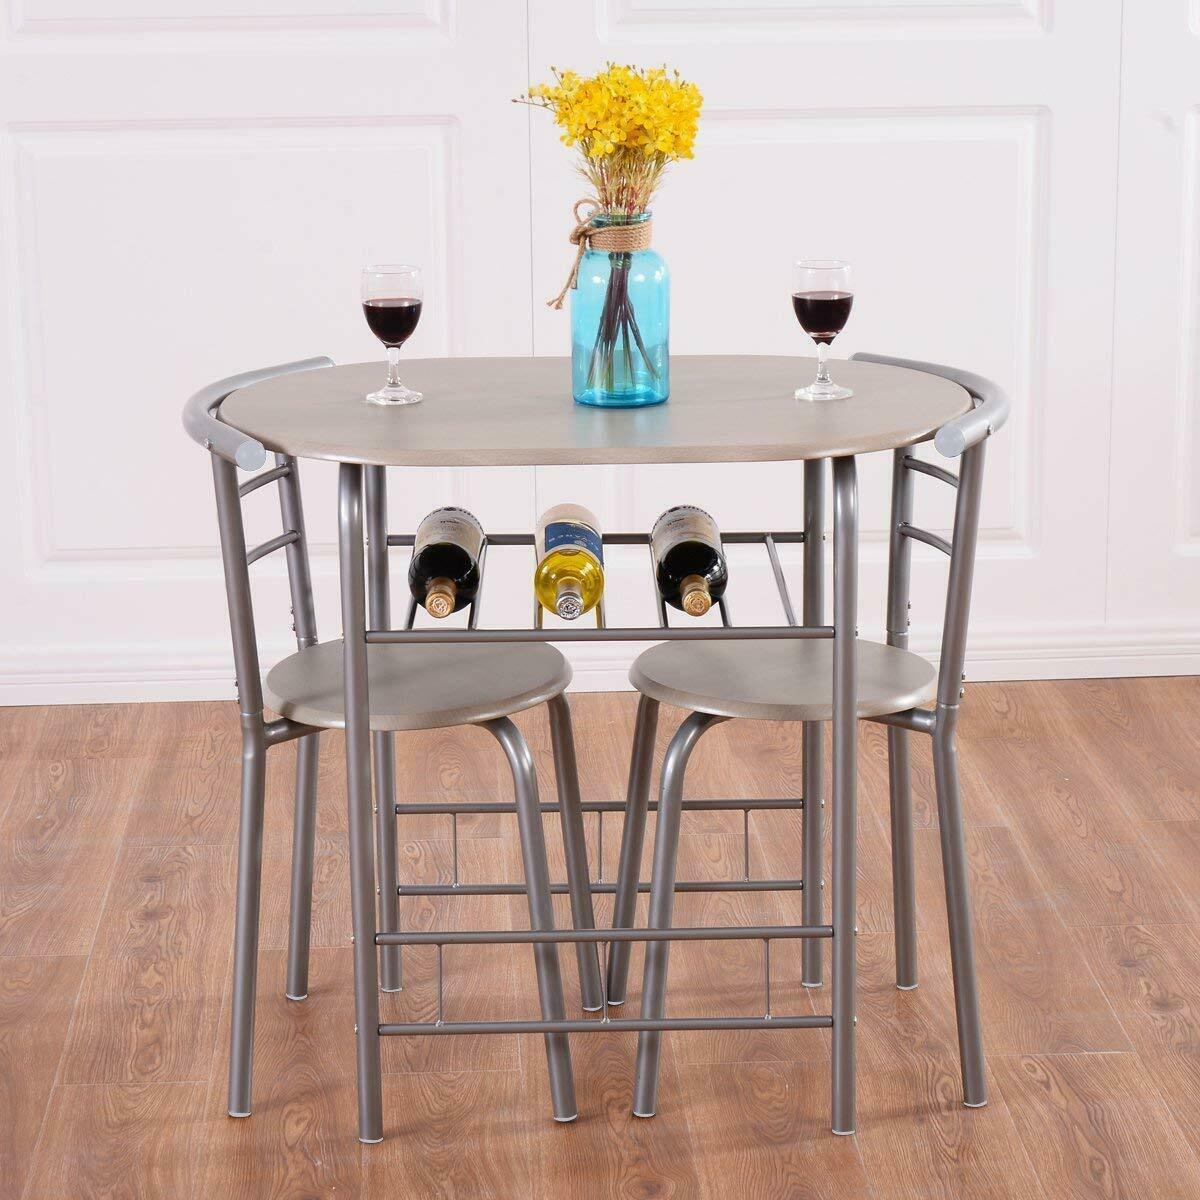 3 Pc Kitchen Table Sets: Silver Natural 3 Pc Dining Table Set Chairs Kitchen Bistro